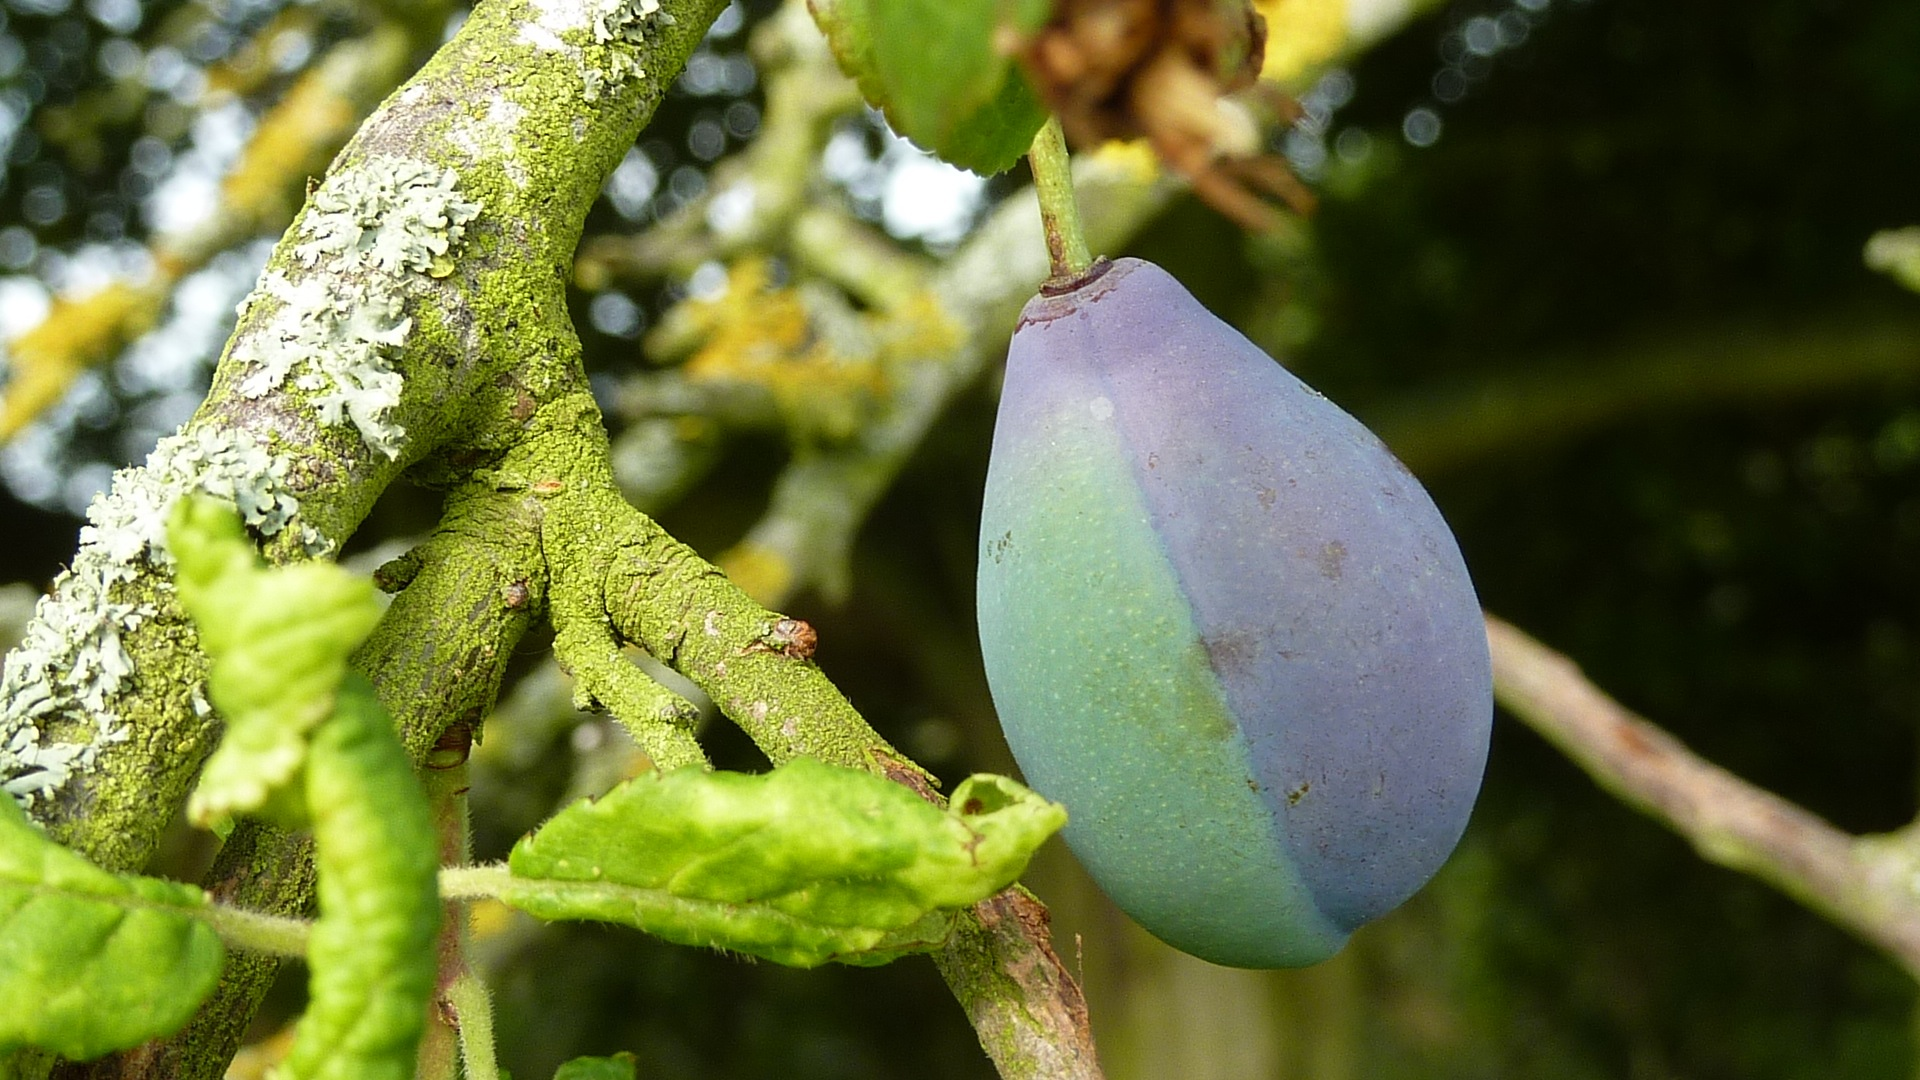 A two-toned Shropshire Prune damson growing in my orchard, August 2013